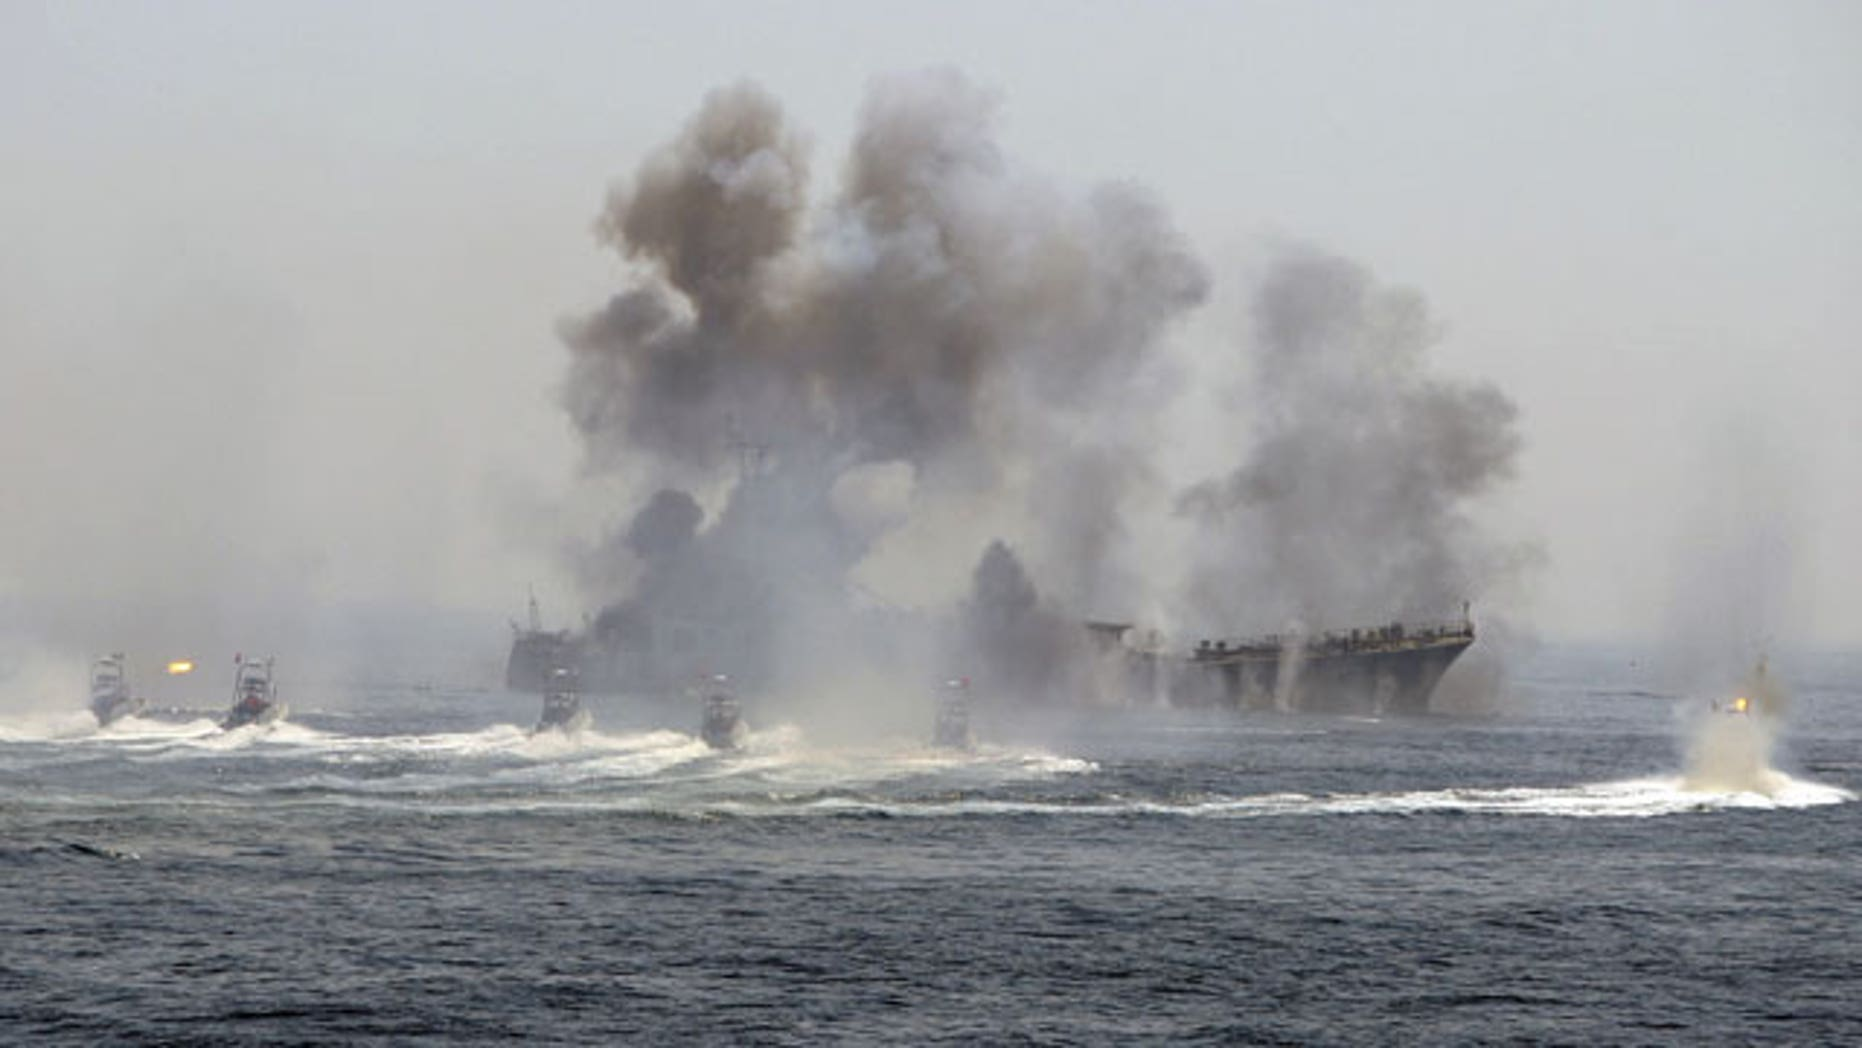 Revolutionary Guard's war game in the Persian Gulf, Iran, Thursday, April 22, 2010. Iran's elite Revolutionary Guard started large-scale war games in the Persian Gulf and the strategic Strait of Hormuz, state television reported. Iran has been holding military maneuvers in the gulf and the Strait of Hormuz annually since 2006 to show off its military capabilities.